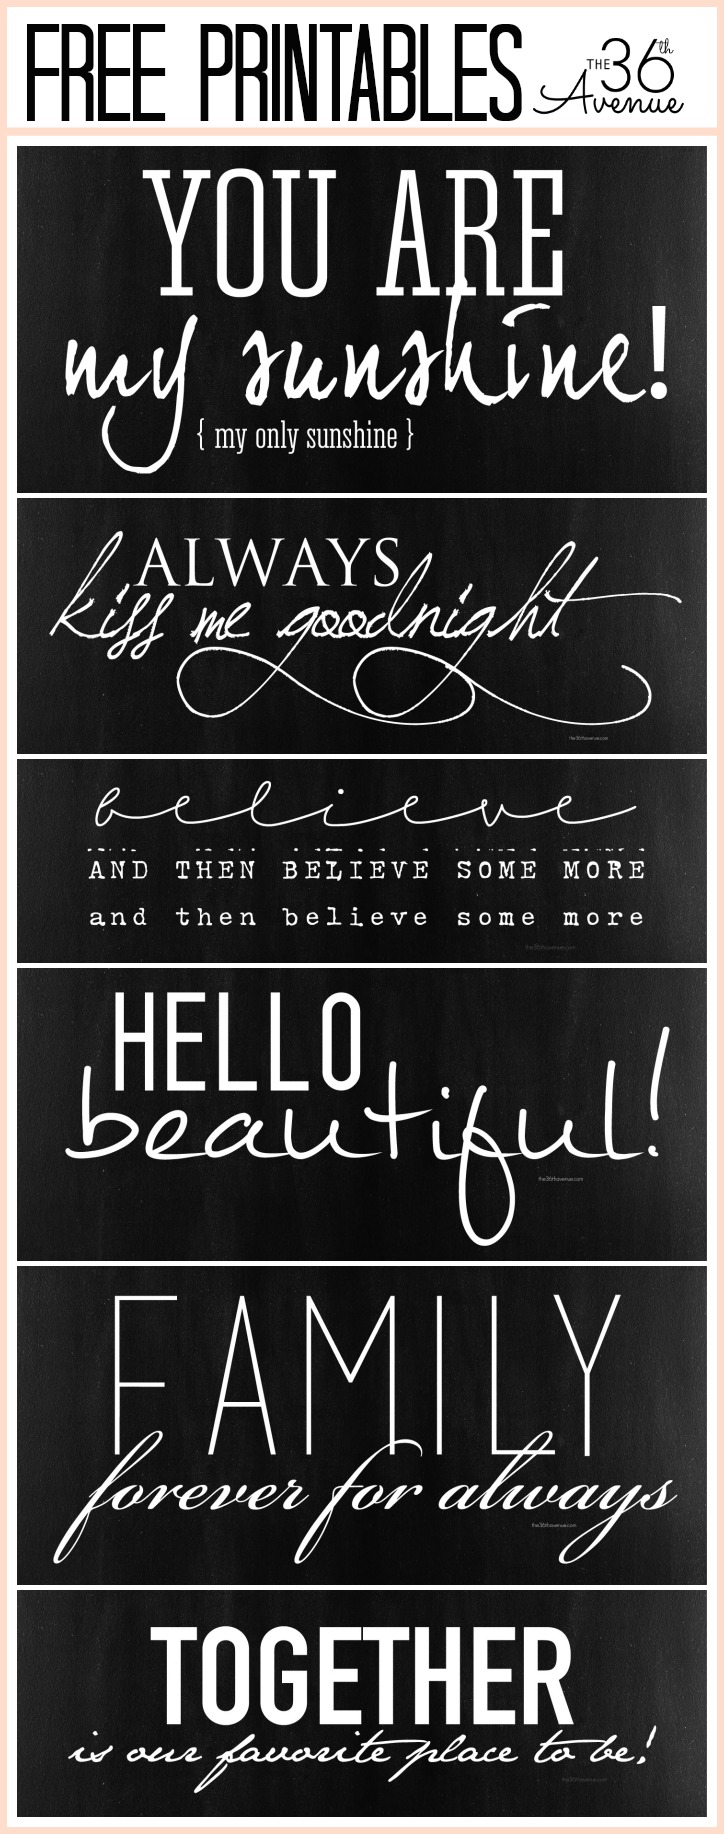 lettering fonts free printable the 36th avenue free fonts and printable combinations 19814 | Free Printable Chalkboard Collection